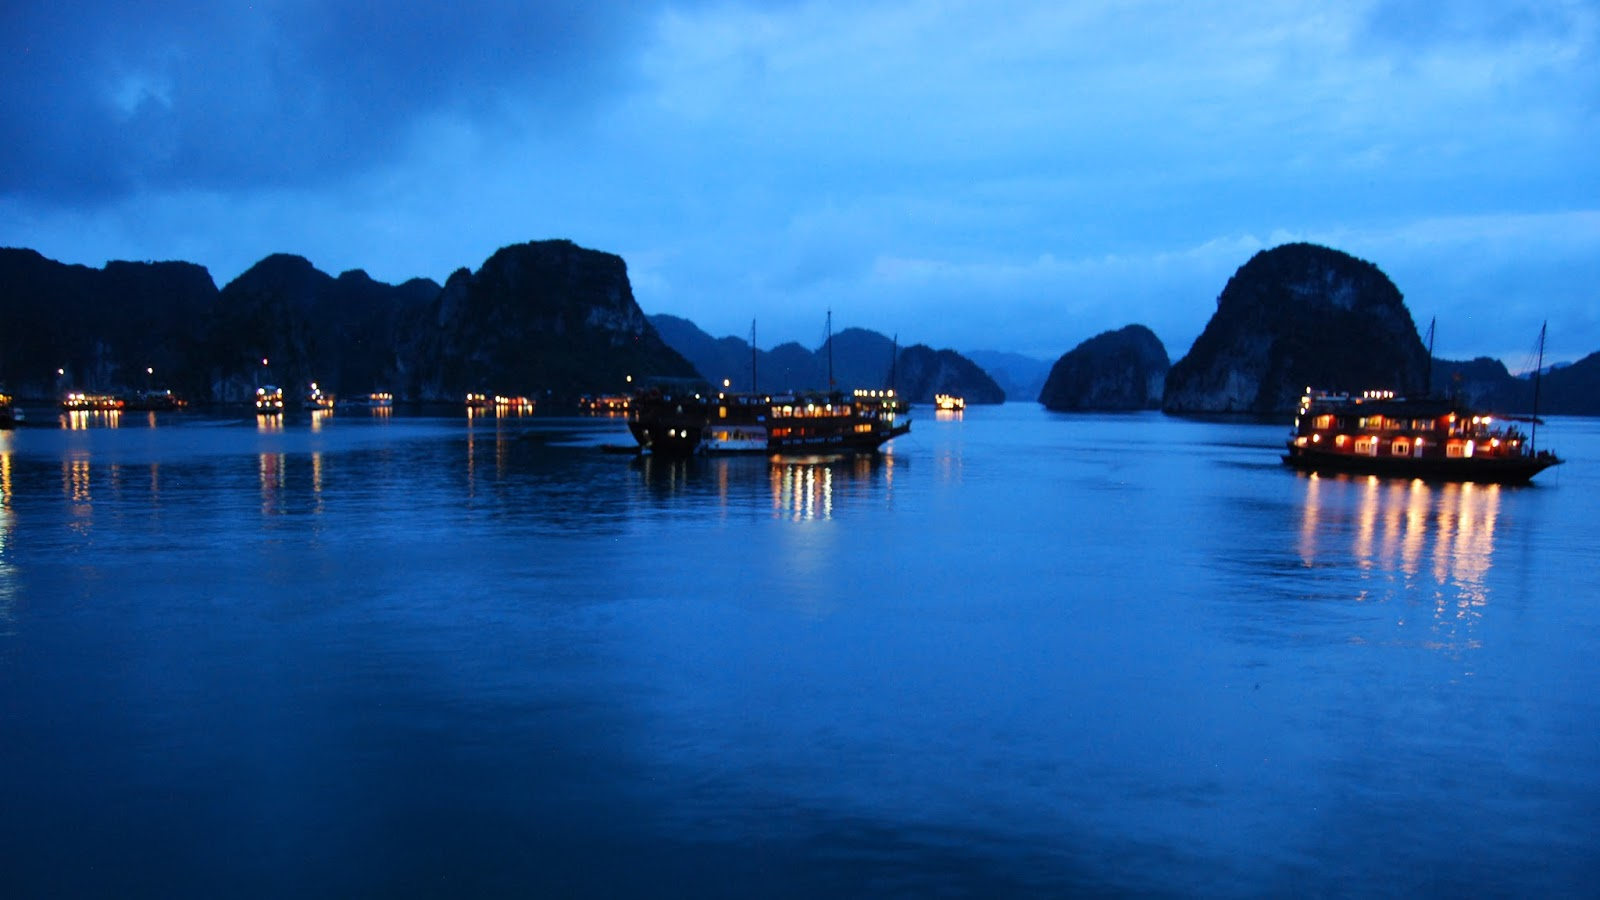 Wallpaper Desktop 3d Hd Car Download Ha Long Bay Wallpapers Most Beautiful Places In